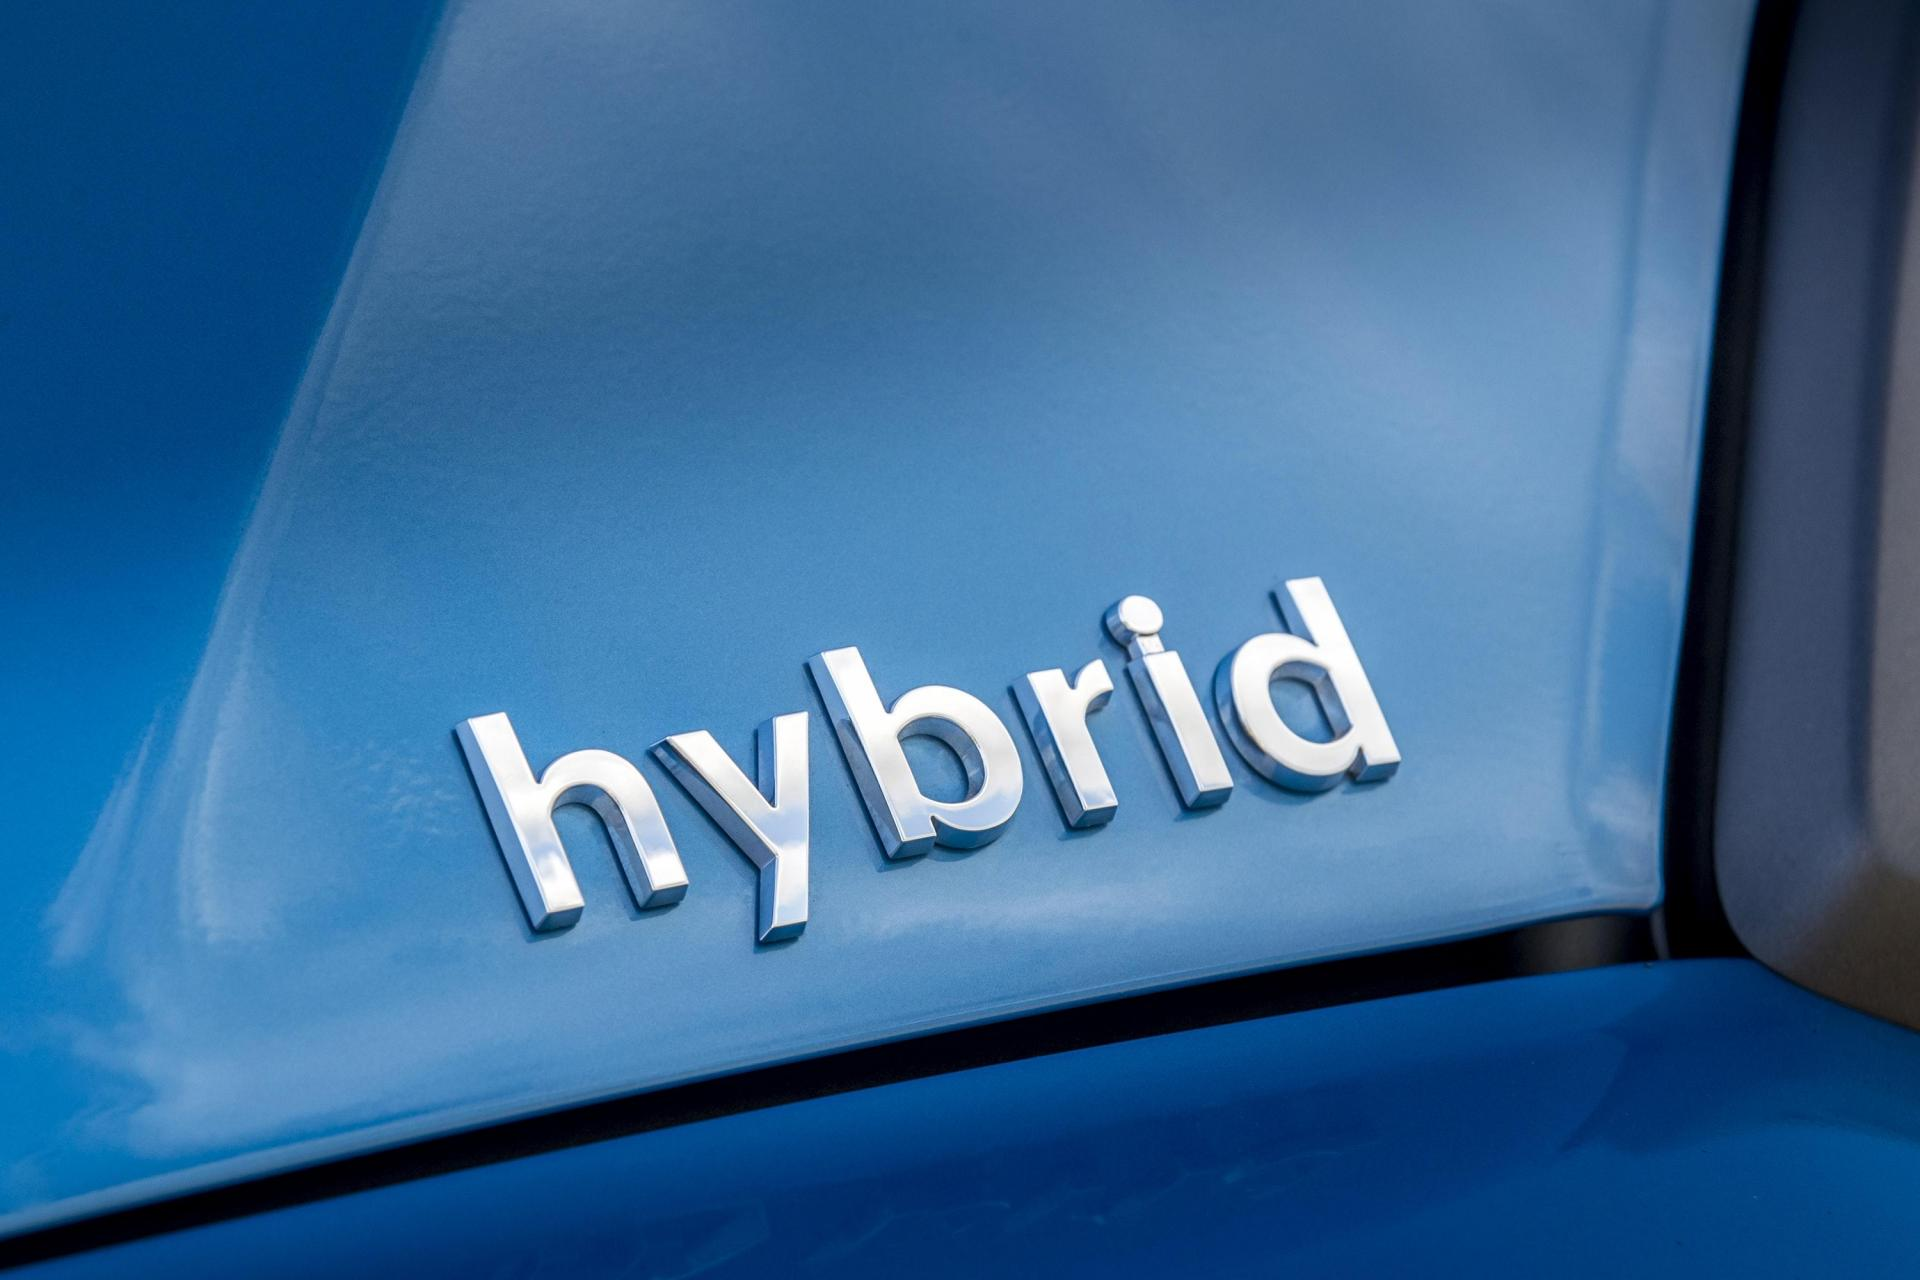 The hybrid powertrain aims to deliver the best of both worlds.